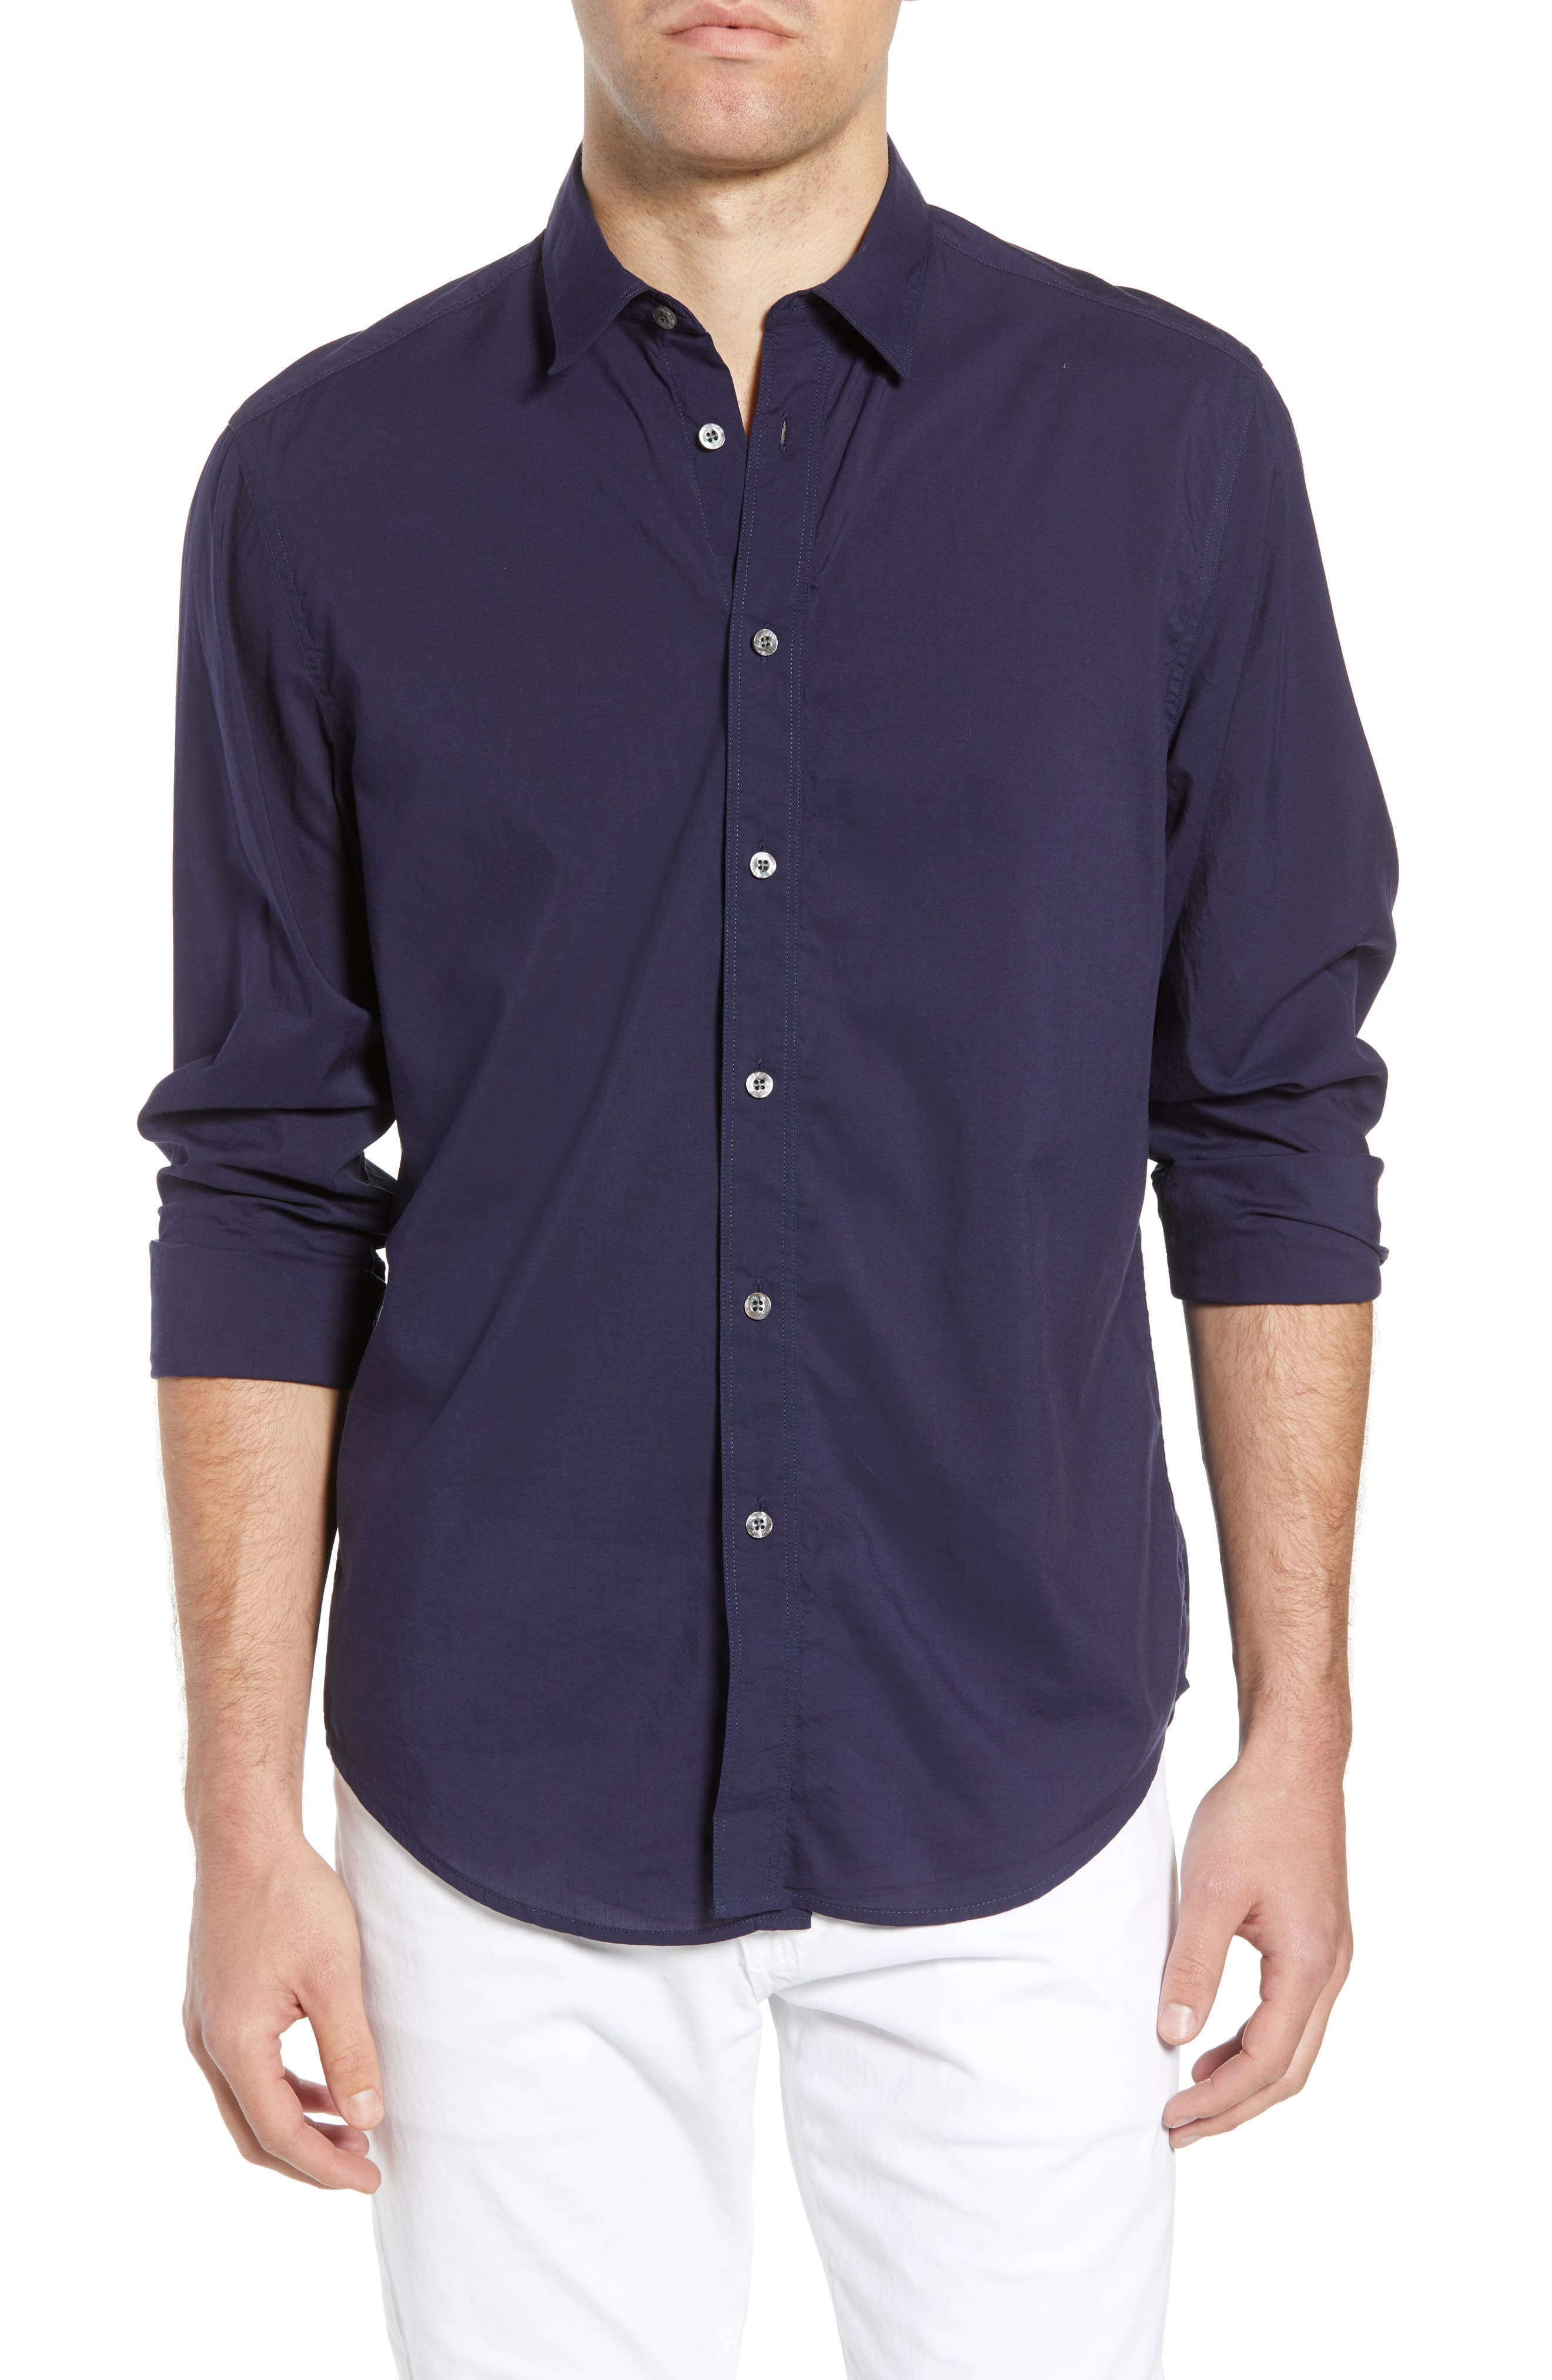 Pacifica Regular Fit Solid Sport Shirt,                         Main,                         color, 410